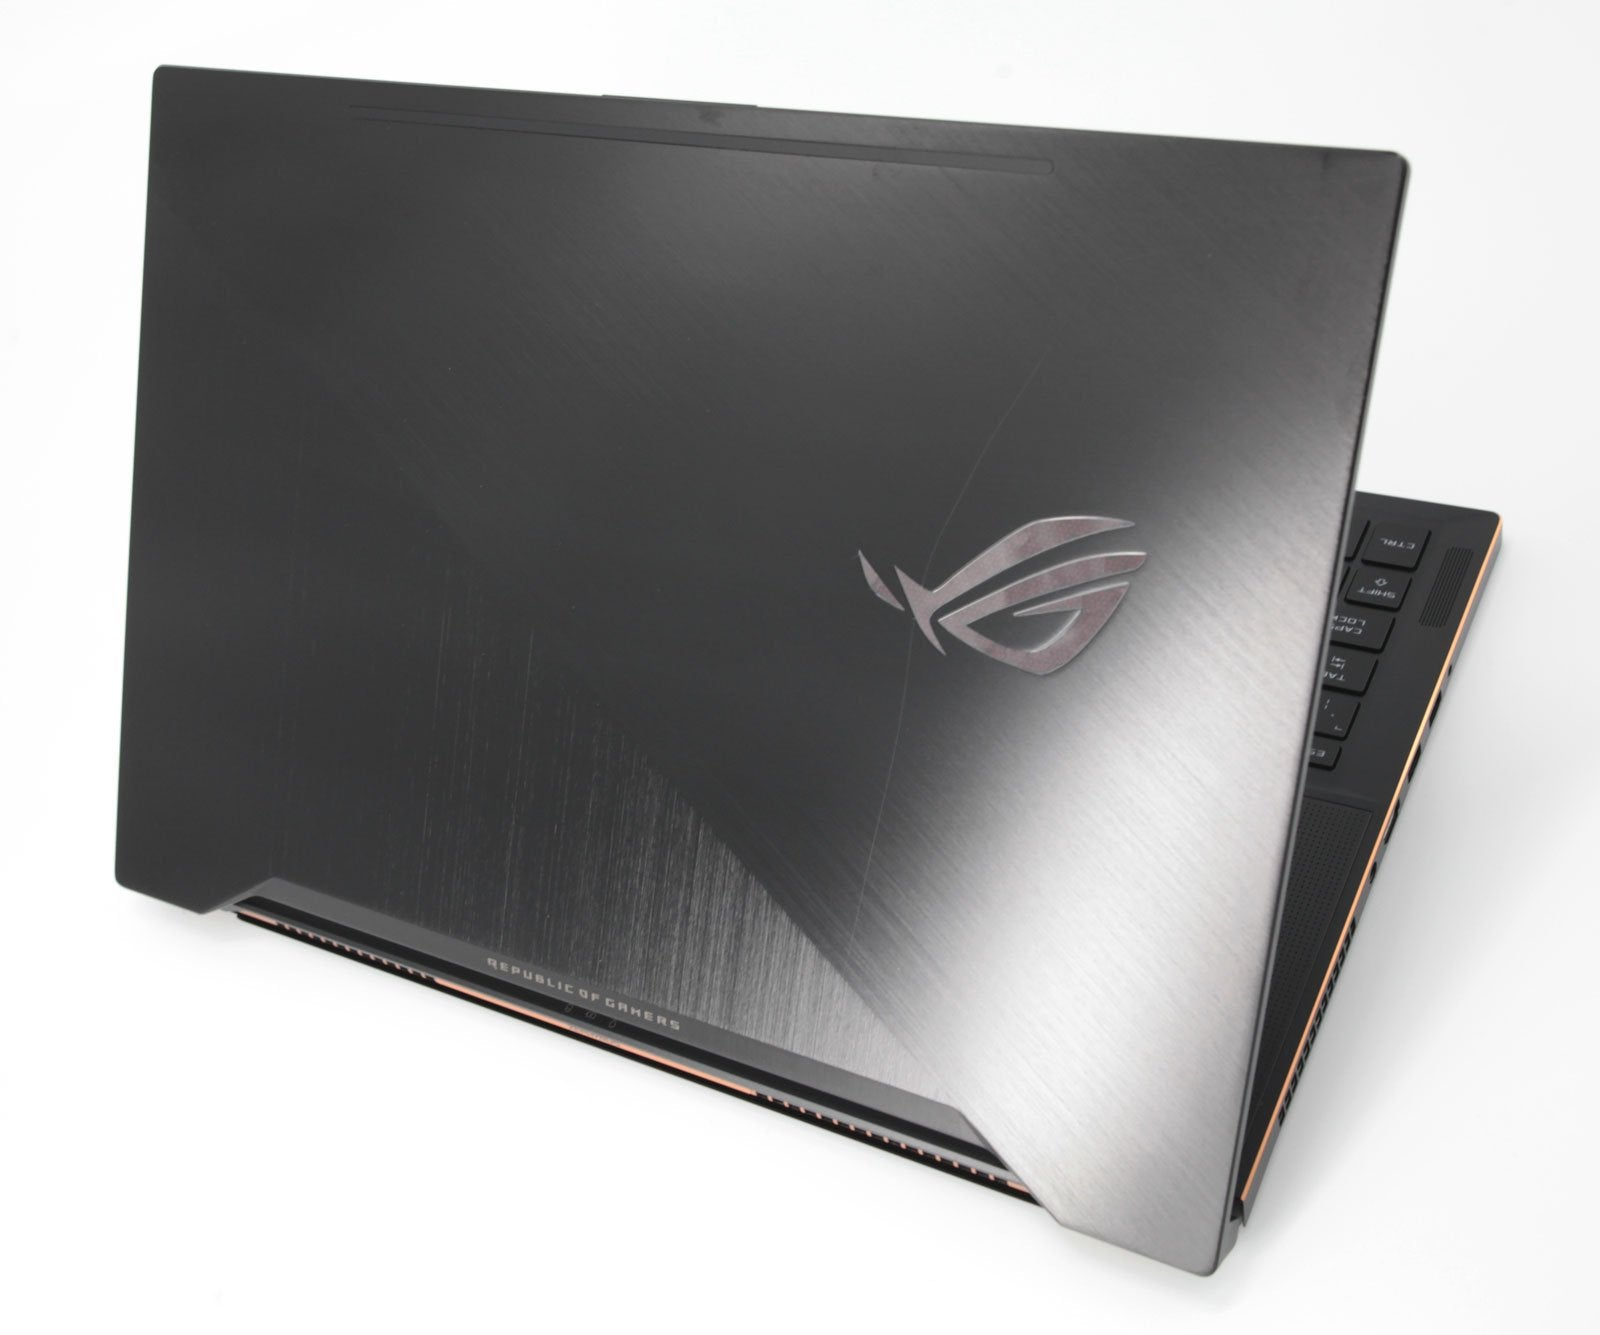 ASUS ROG Zephyrus Gaming Laptop: GTX 1080, i7 8th Gen, 16GB RAM, 512GB SSD - CruiseTech